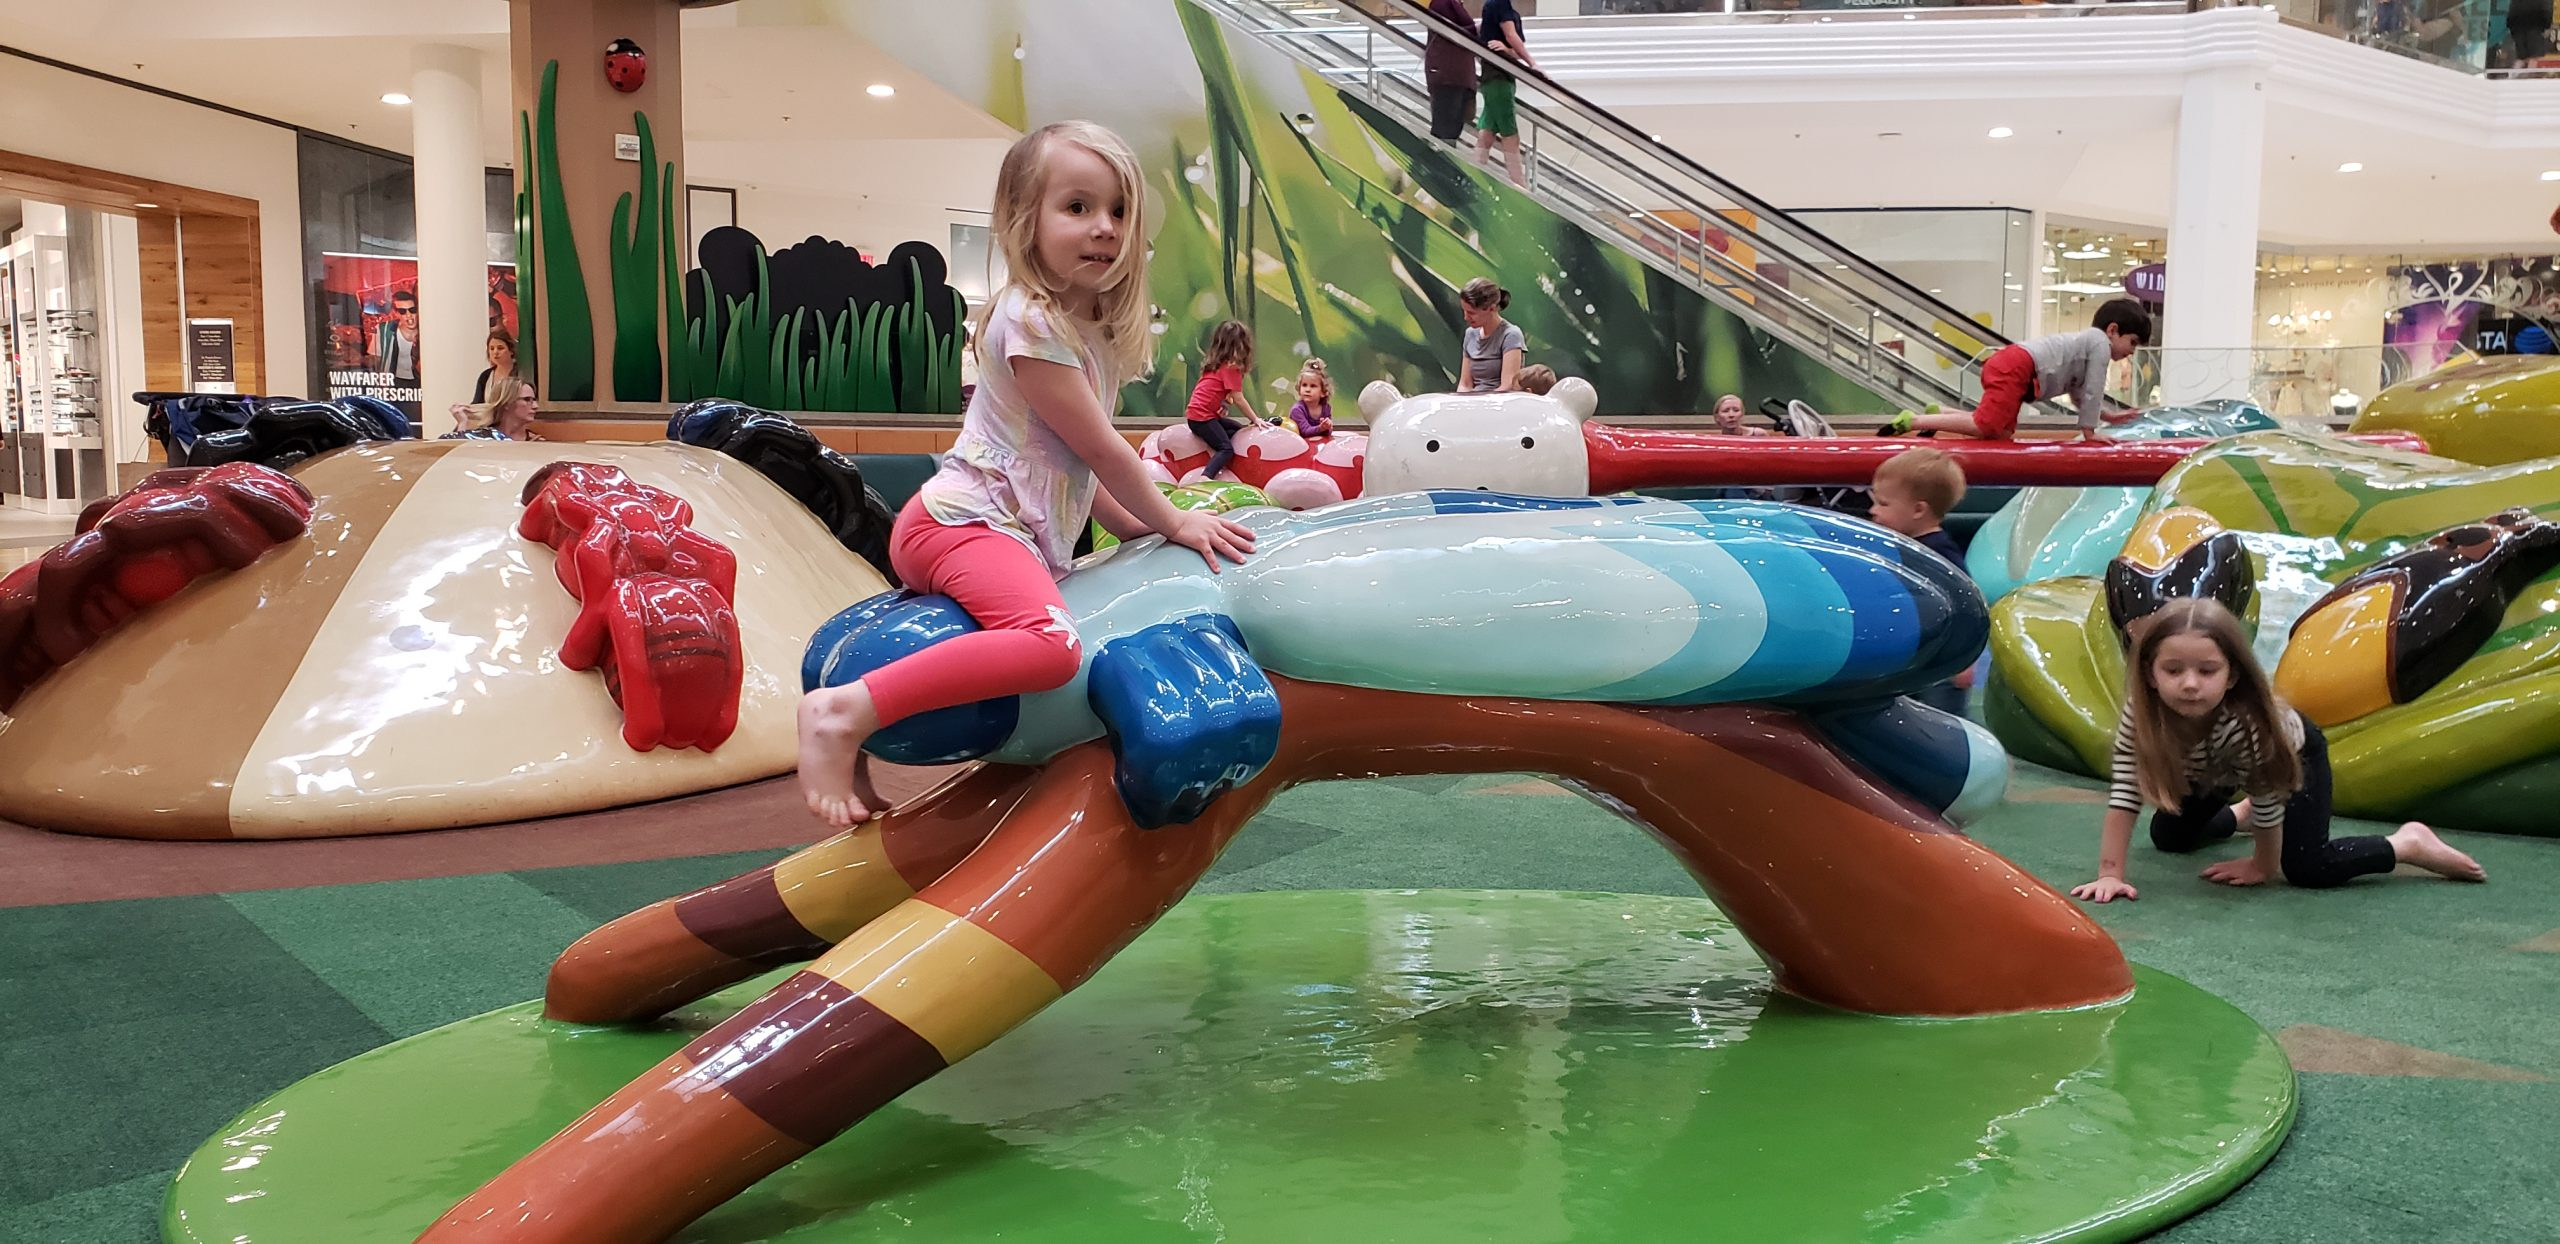 12 Oaks Mall Indoor Play Space